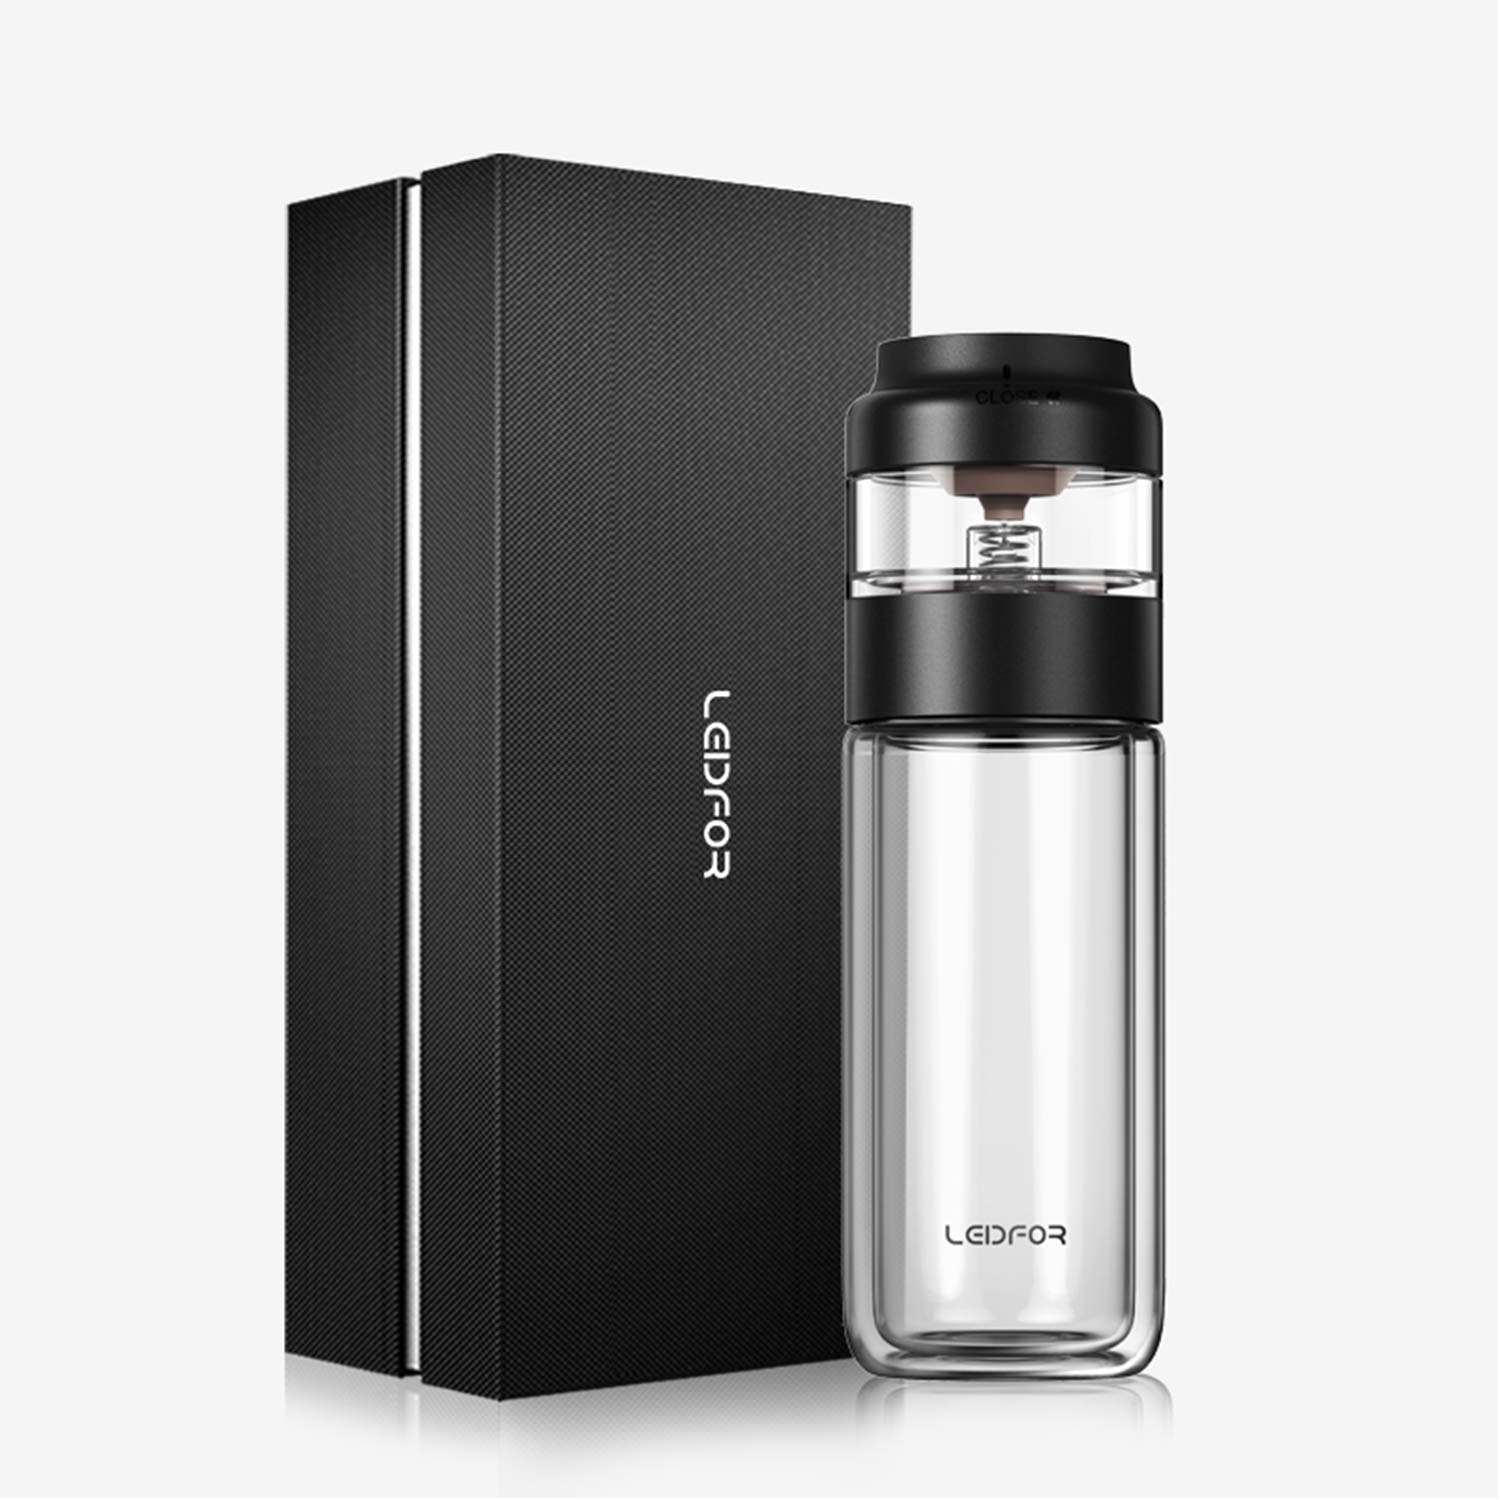 LEIDFOR Glass Tea Tumbler with Leaf-Tea Separation Infuser, Double Wall Glass Travel Tea Mug, Leakproof Tea Bottle with Strainer BPA Free Black 8 Ounce